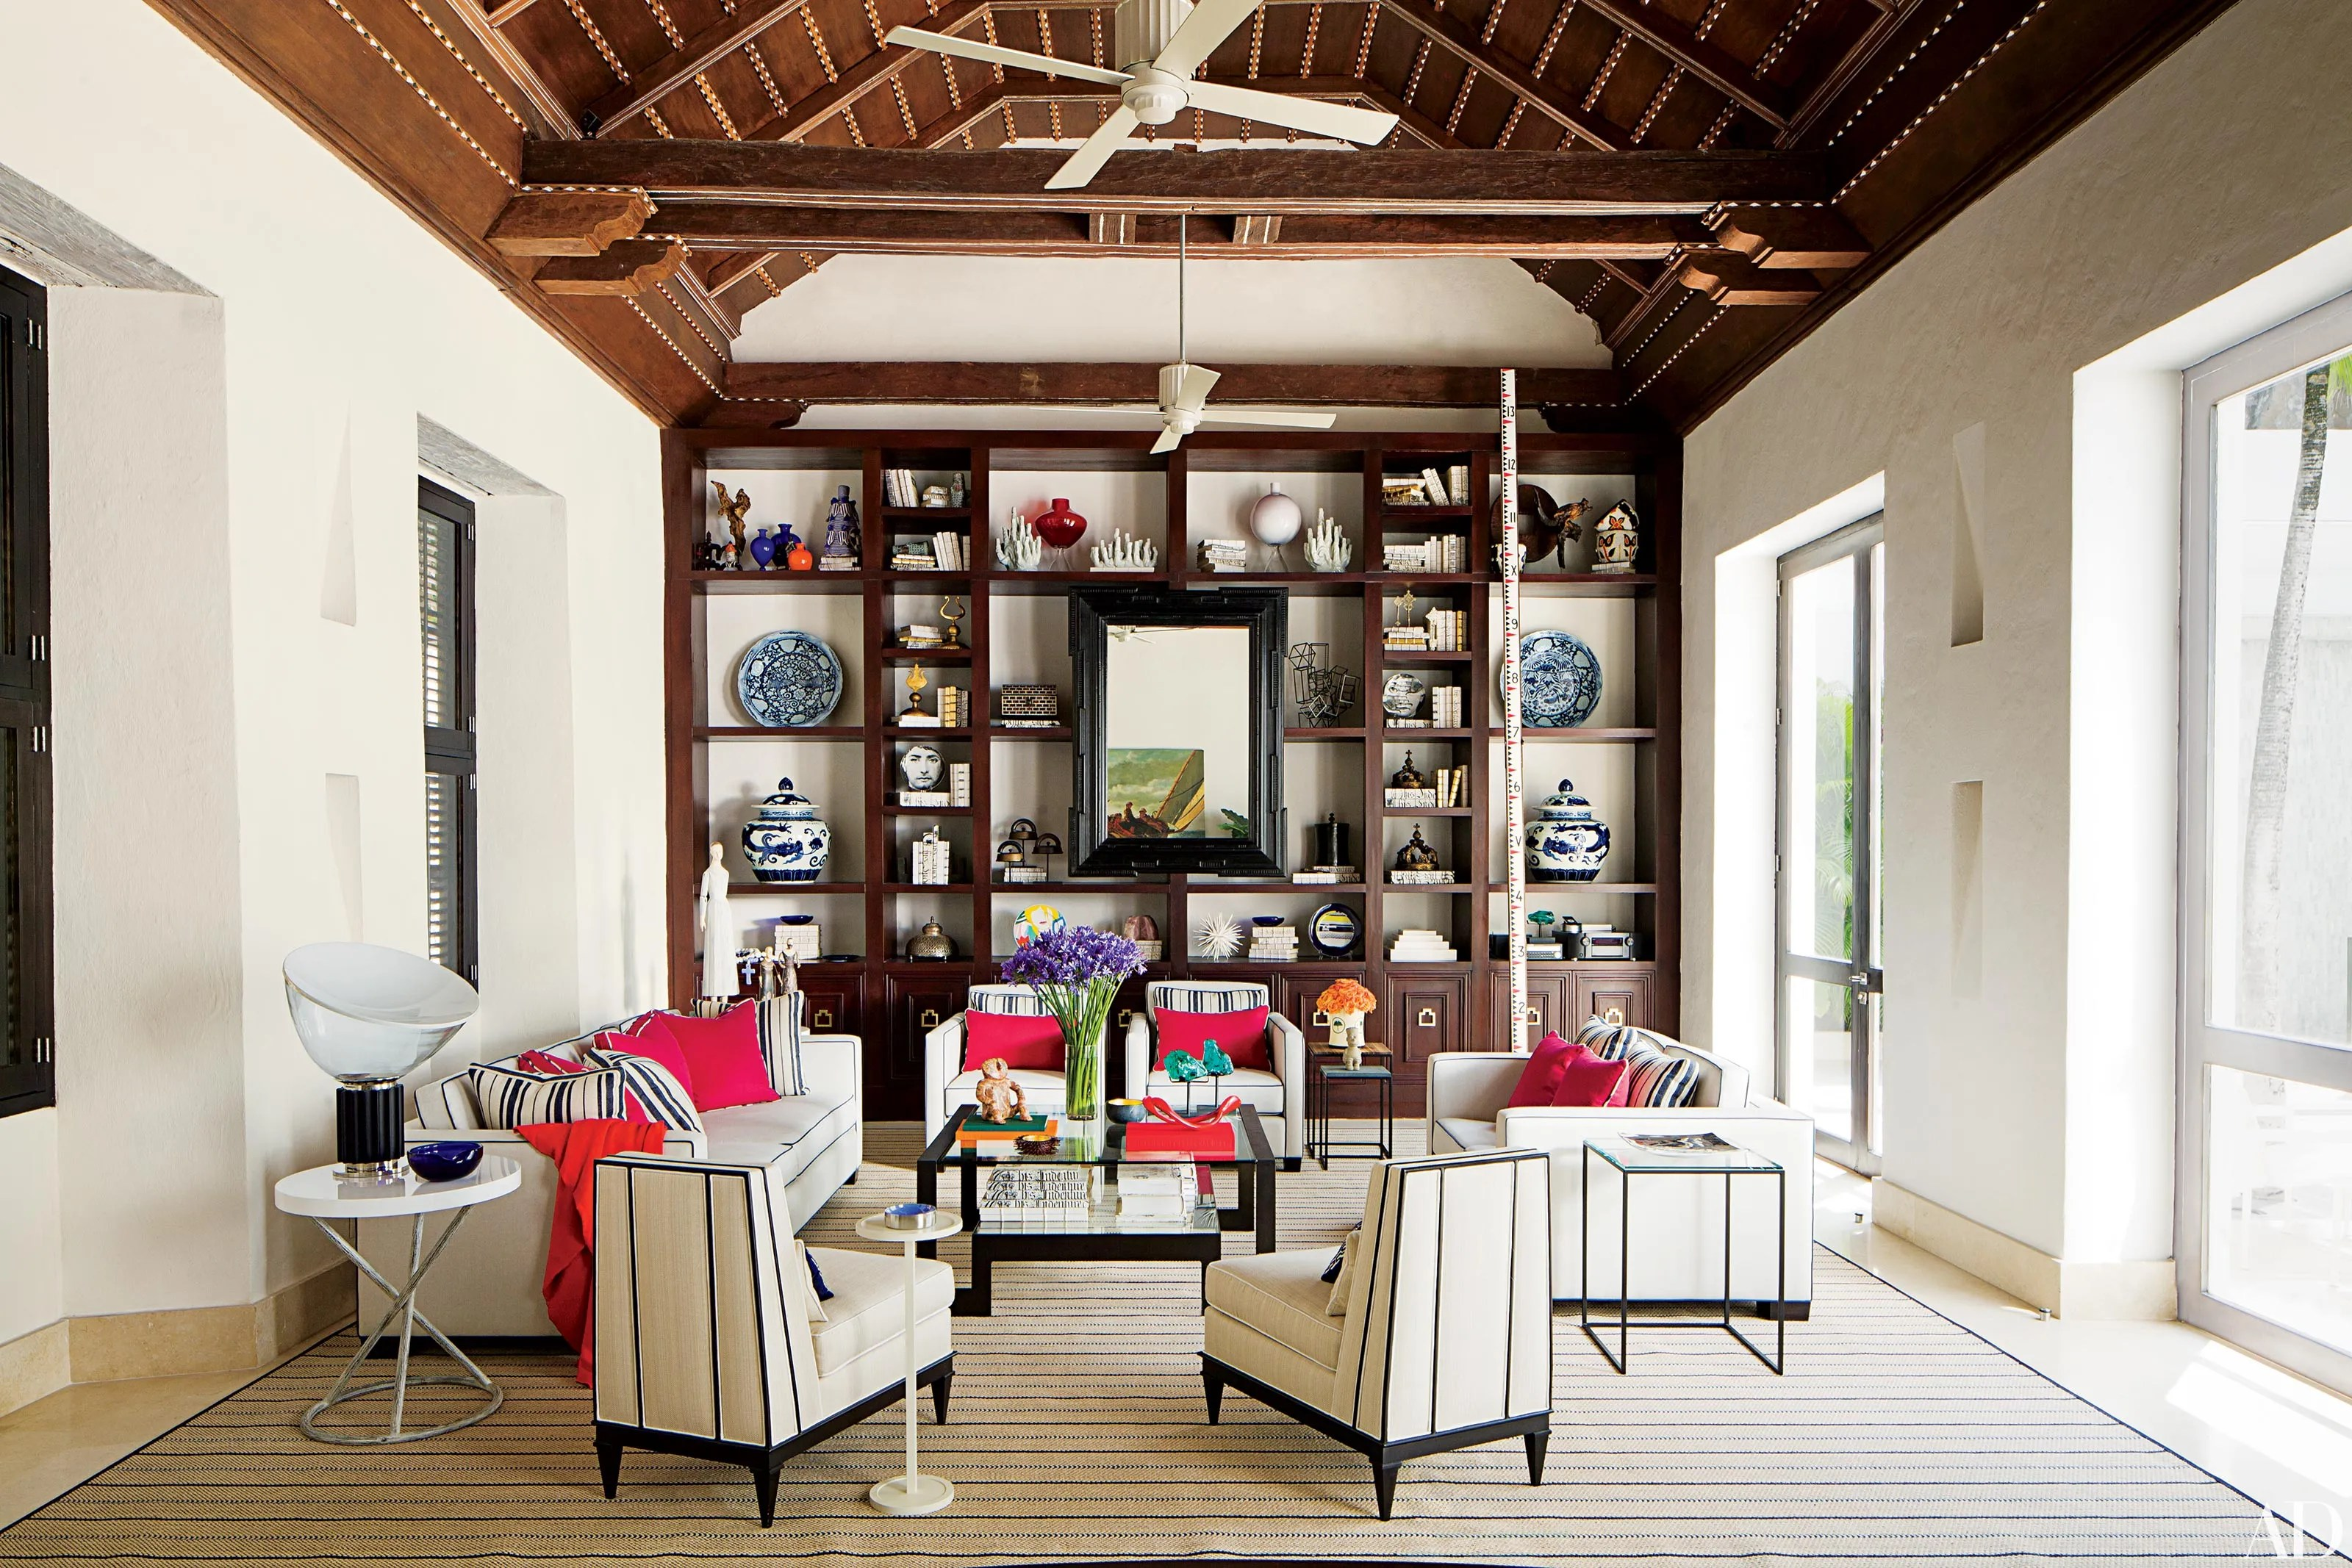 Homes with Eclectic Decor and Worldly Style Photos